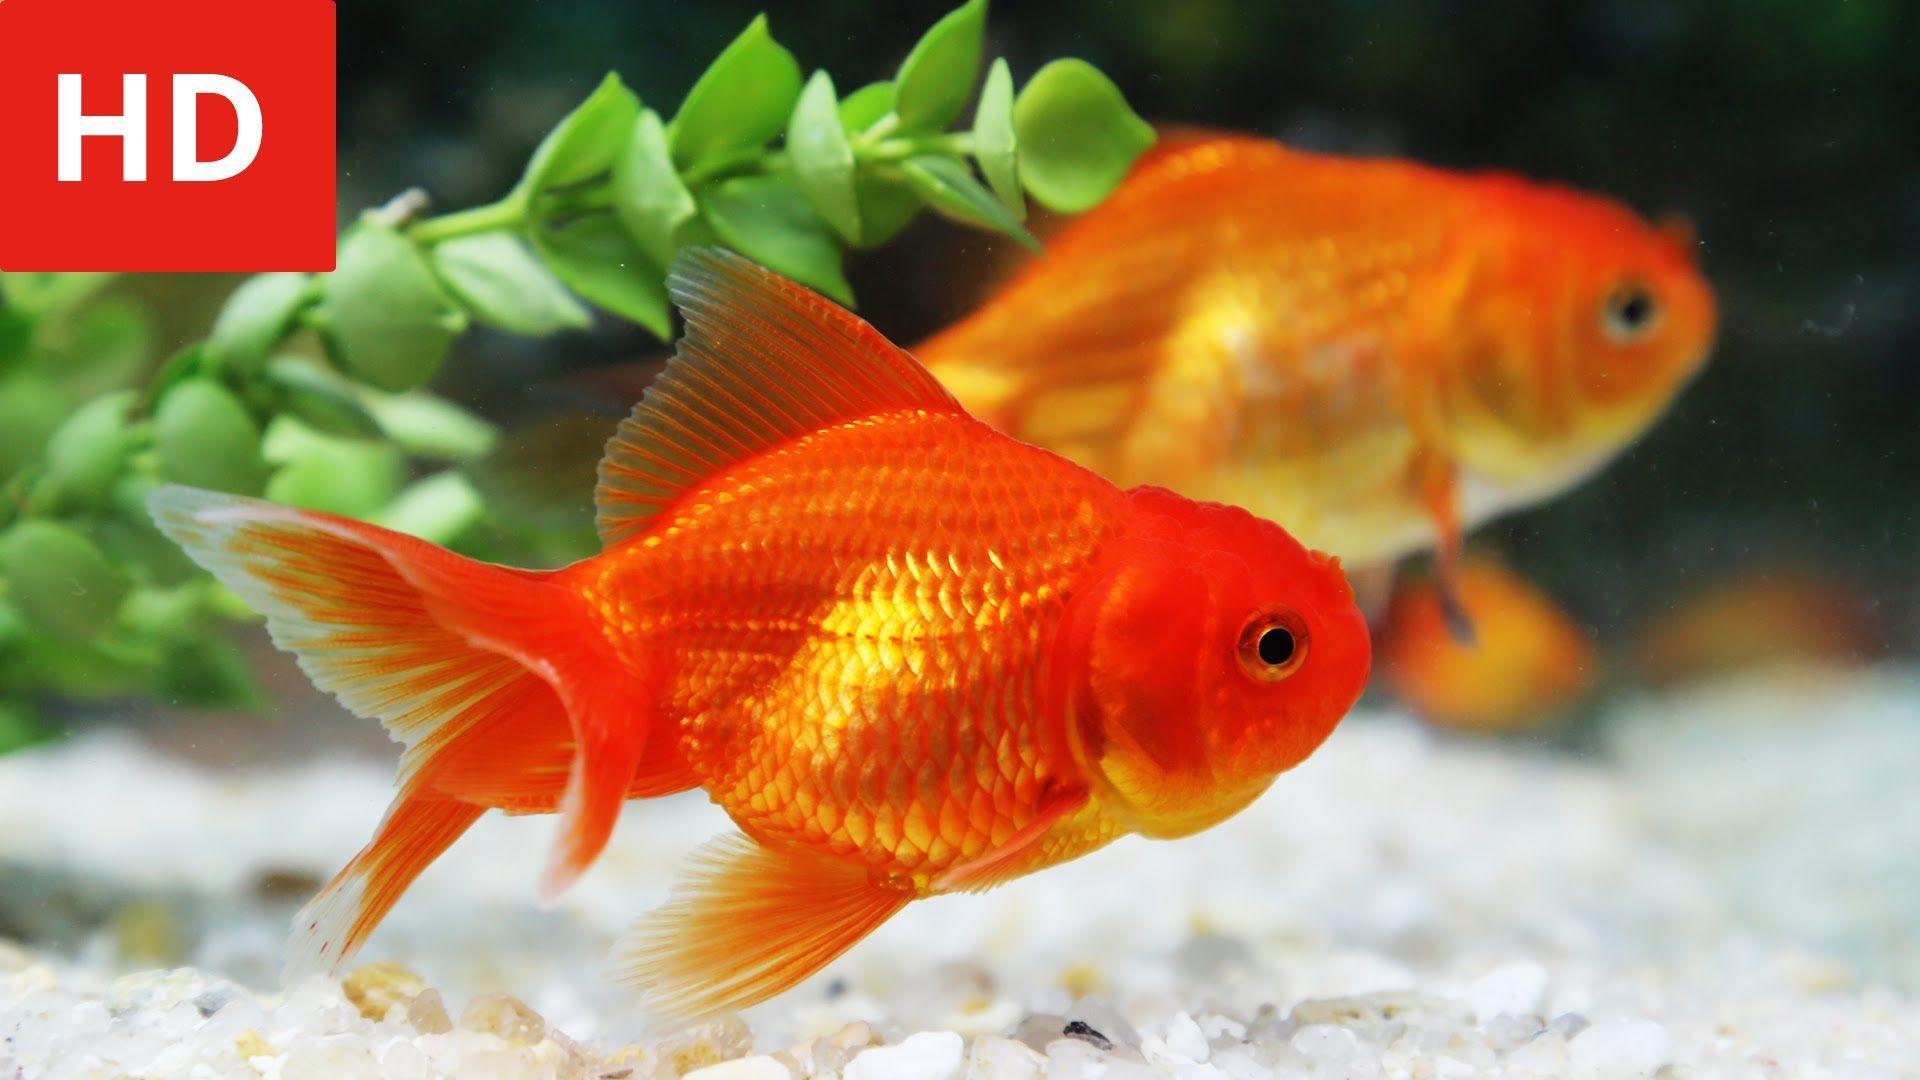 Hd Wallpapers For Laptops Gold Fish Wallpaper Cave